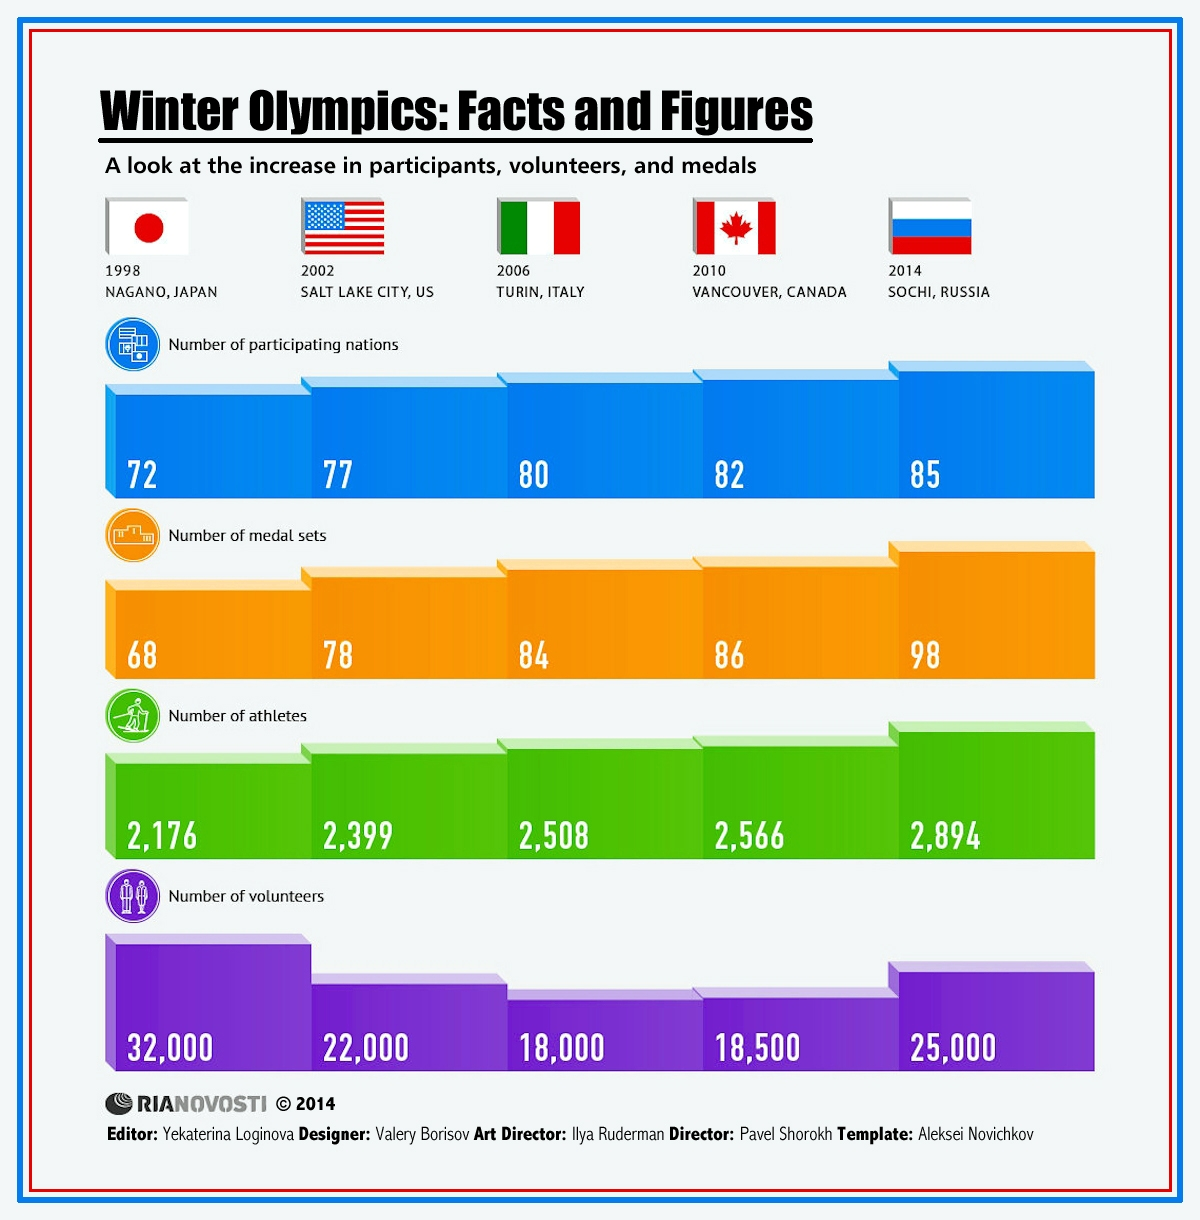 00 RIA-Novosti Infographics. Winter Olympics. Facts and Figures. 2014